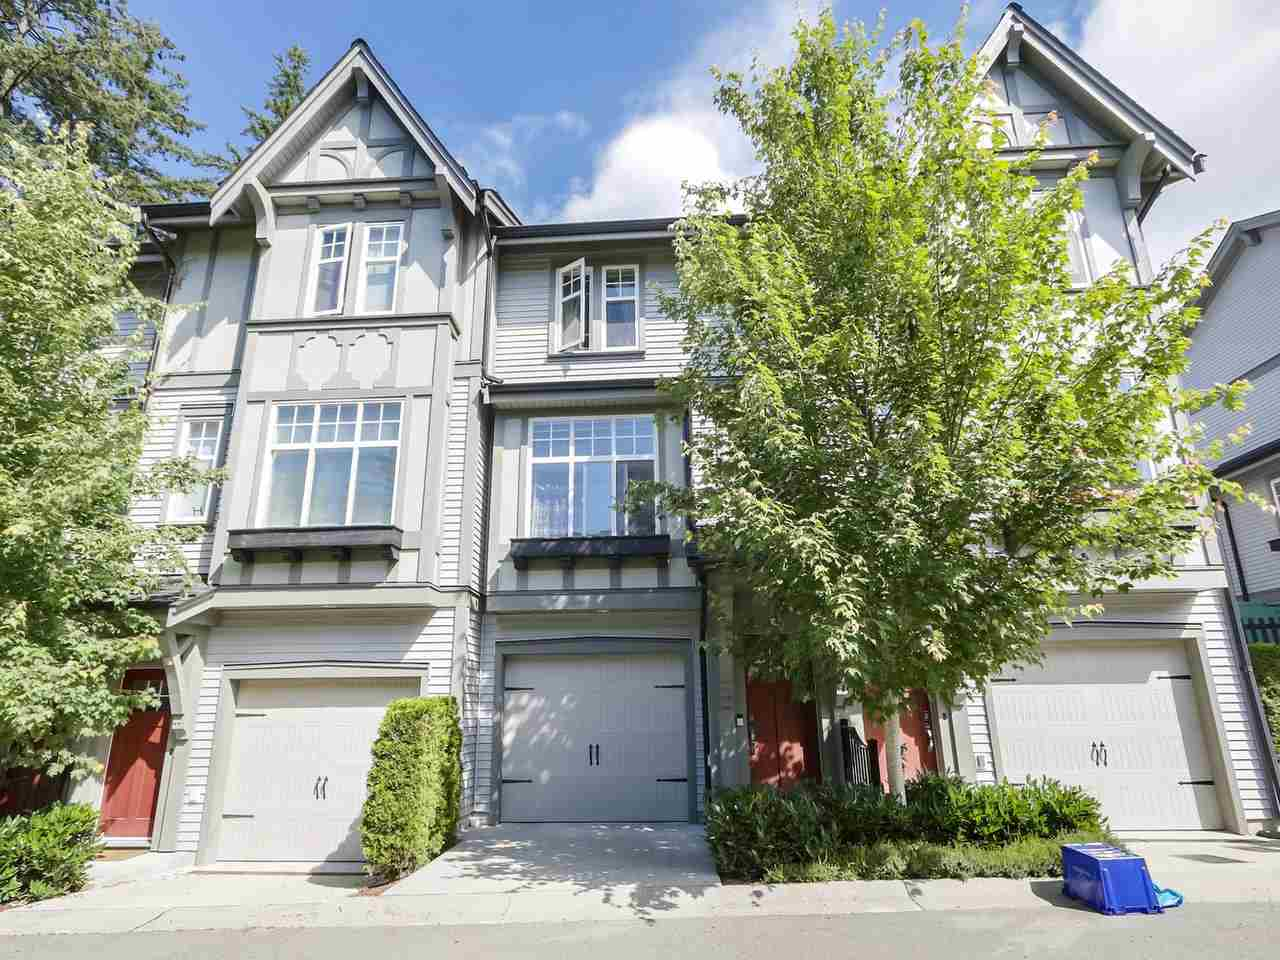 48 1320 RILEY STREET - Burke Mountain Townhouse for sale, 2 Bedrooms (R2470745) - #1